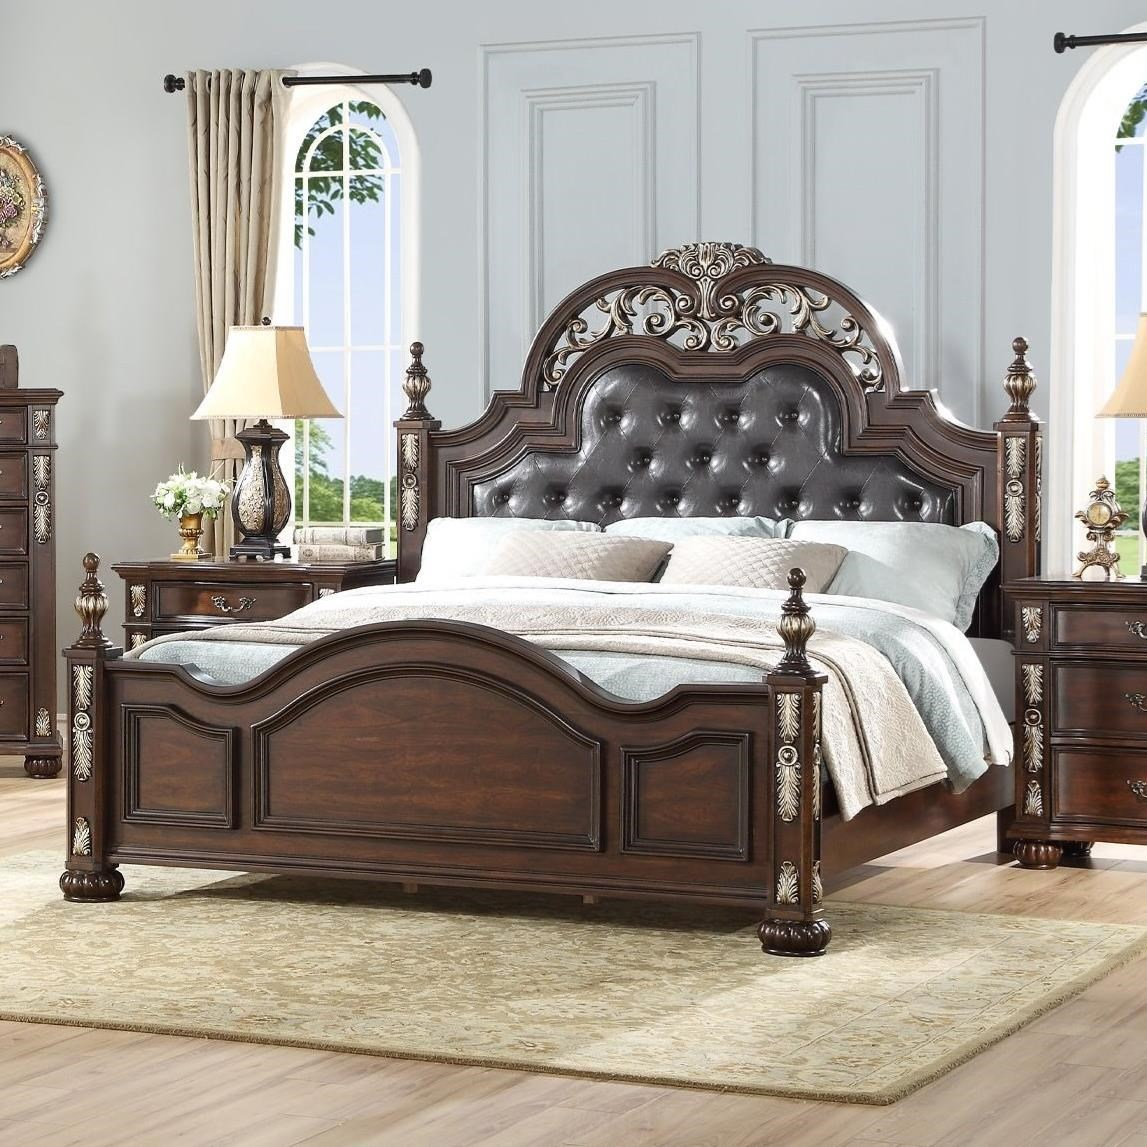 Maximus King Poster Bed with Upholstered Headboard by New Classic at Beck's Furniture